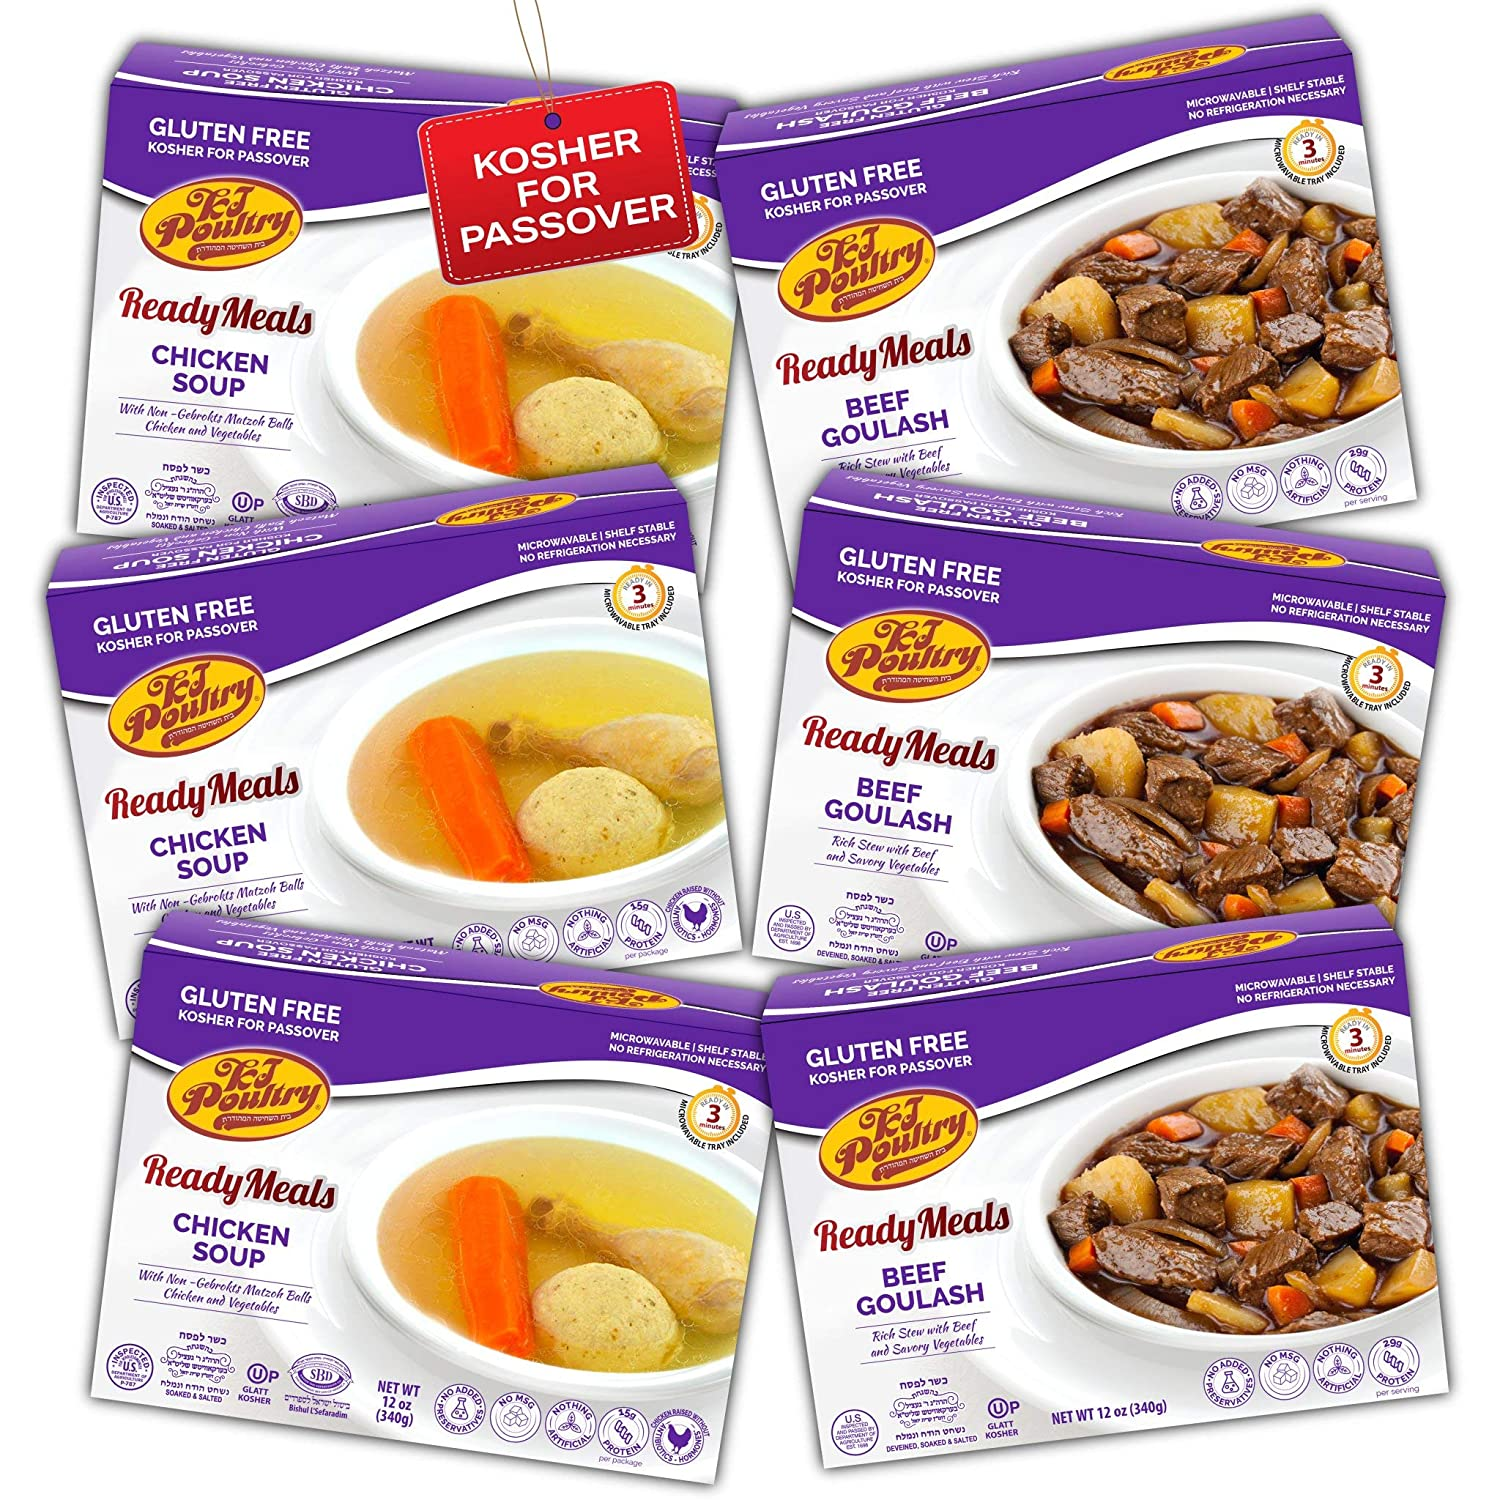 Kosher For Passover Food Matzo Ball Chicken Soup + Beef Goulash - MRE Meat Meals Ready to Eat - Gluten Free (6 Pack - Variety) - Prepared Entree Fully Cooked, Shelf Stable Microwave Dinner